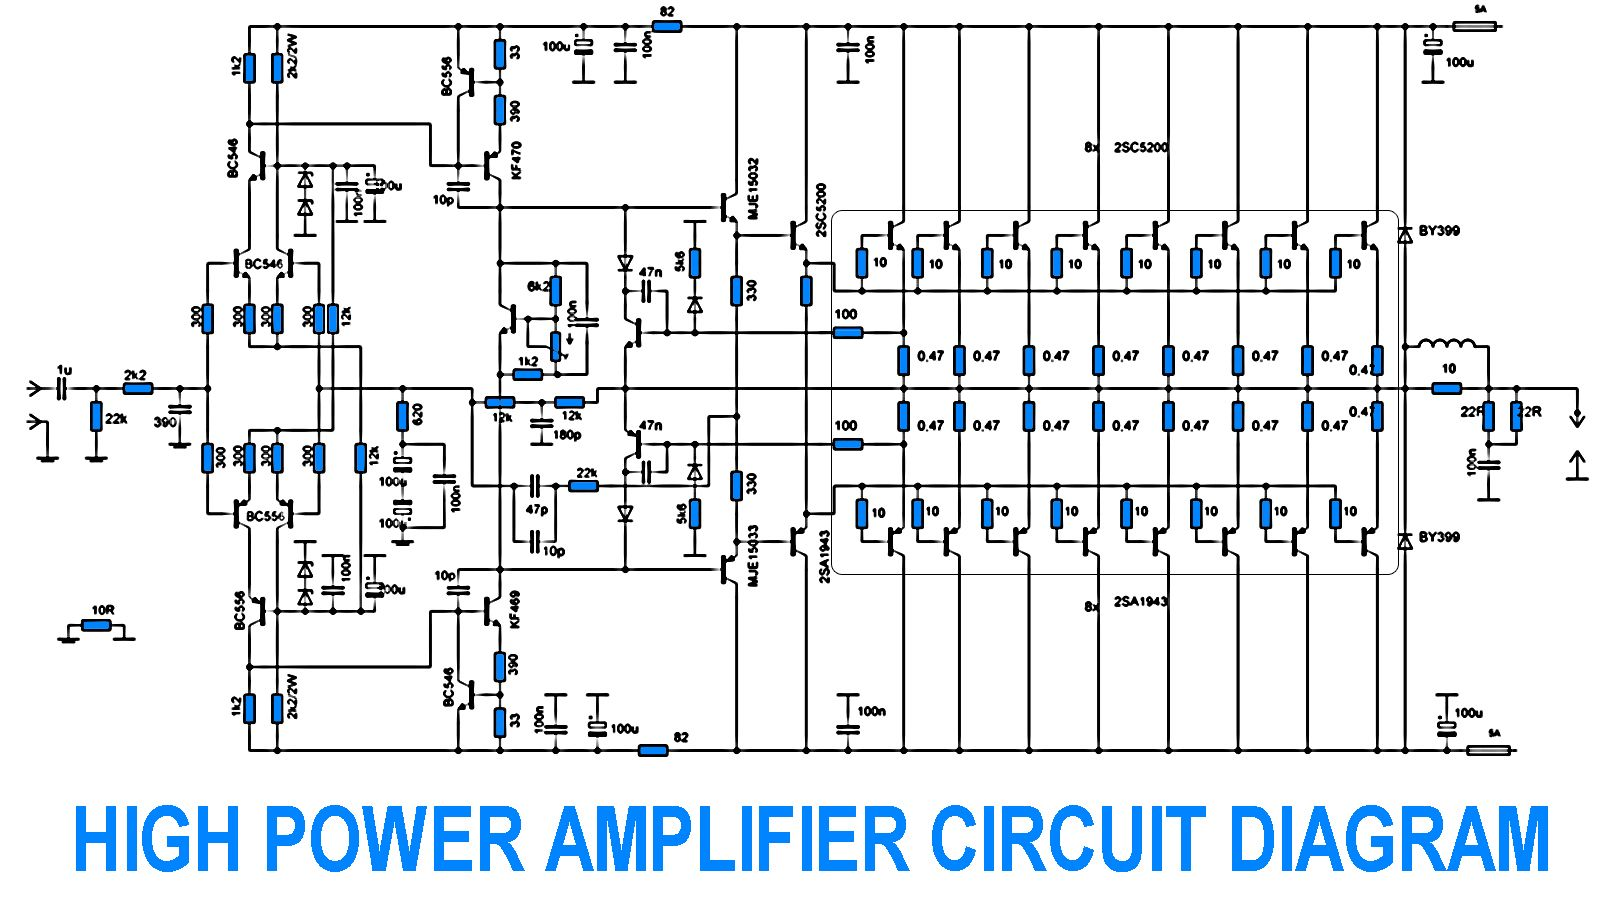 Electronics Project Circuit Diagram Pdf Ask Answer Wiring Projects Circuits Diagrams Free 700w Power Amplifier With 2sc5200 2sa1943 Other S In 2018 Pinterest Amp Electronic 270 Mini